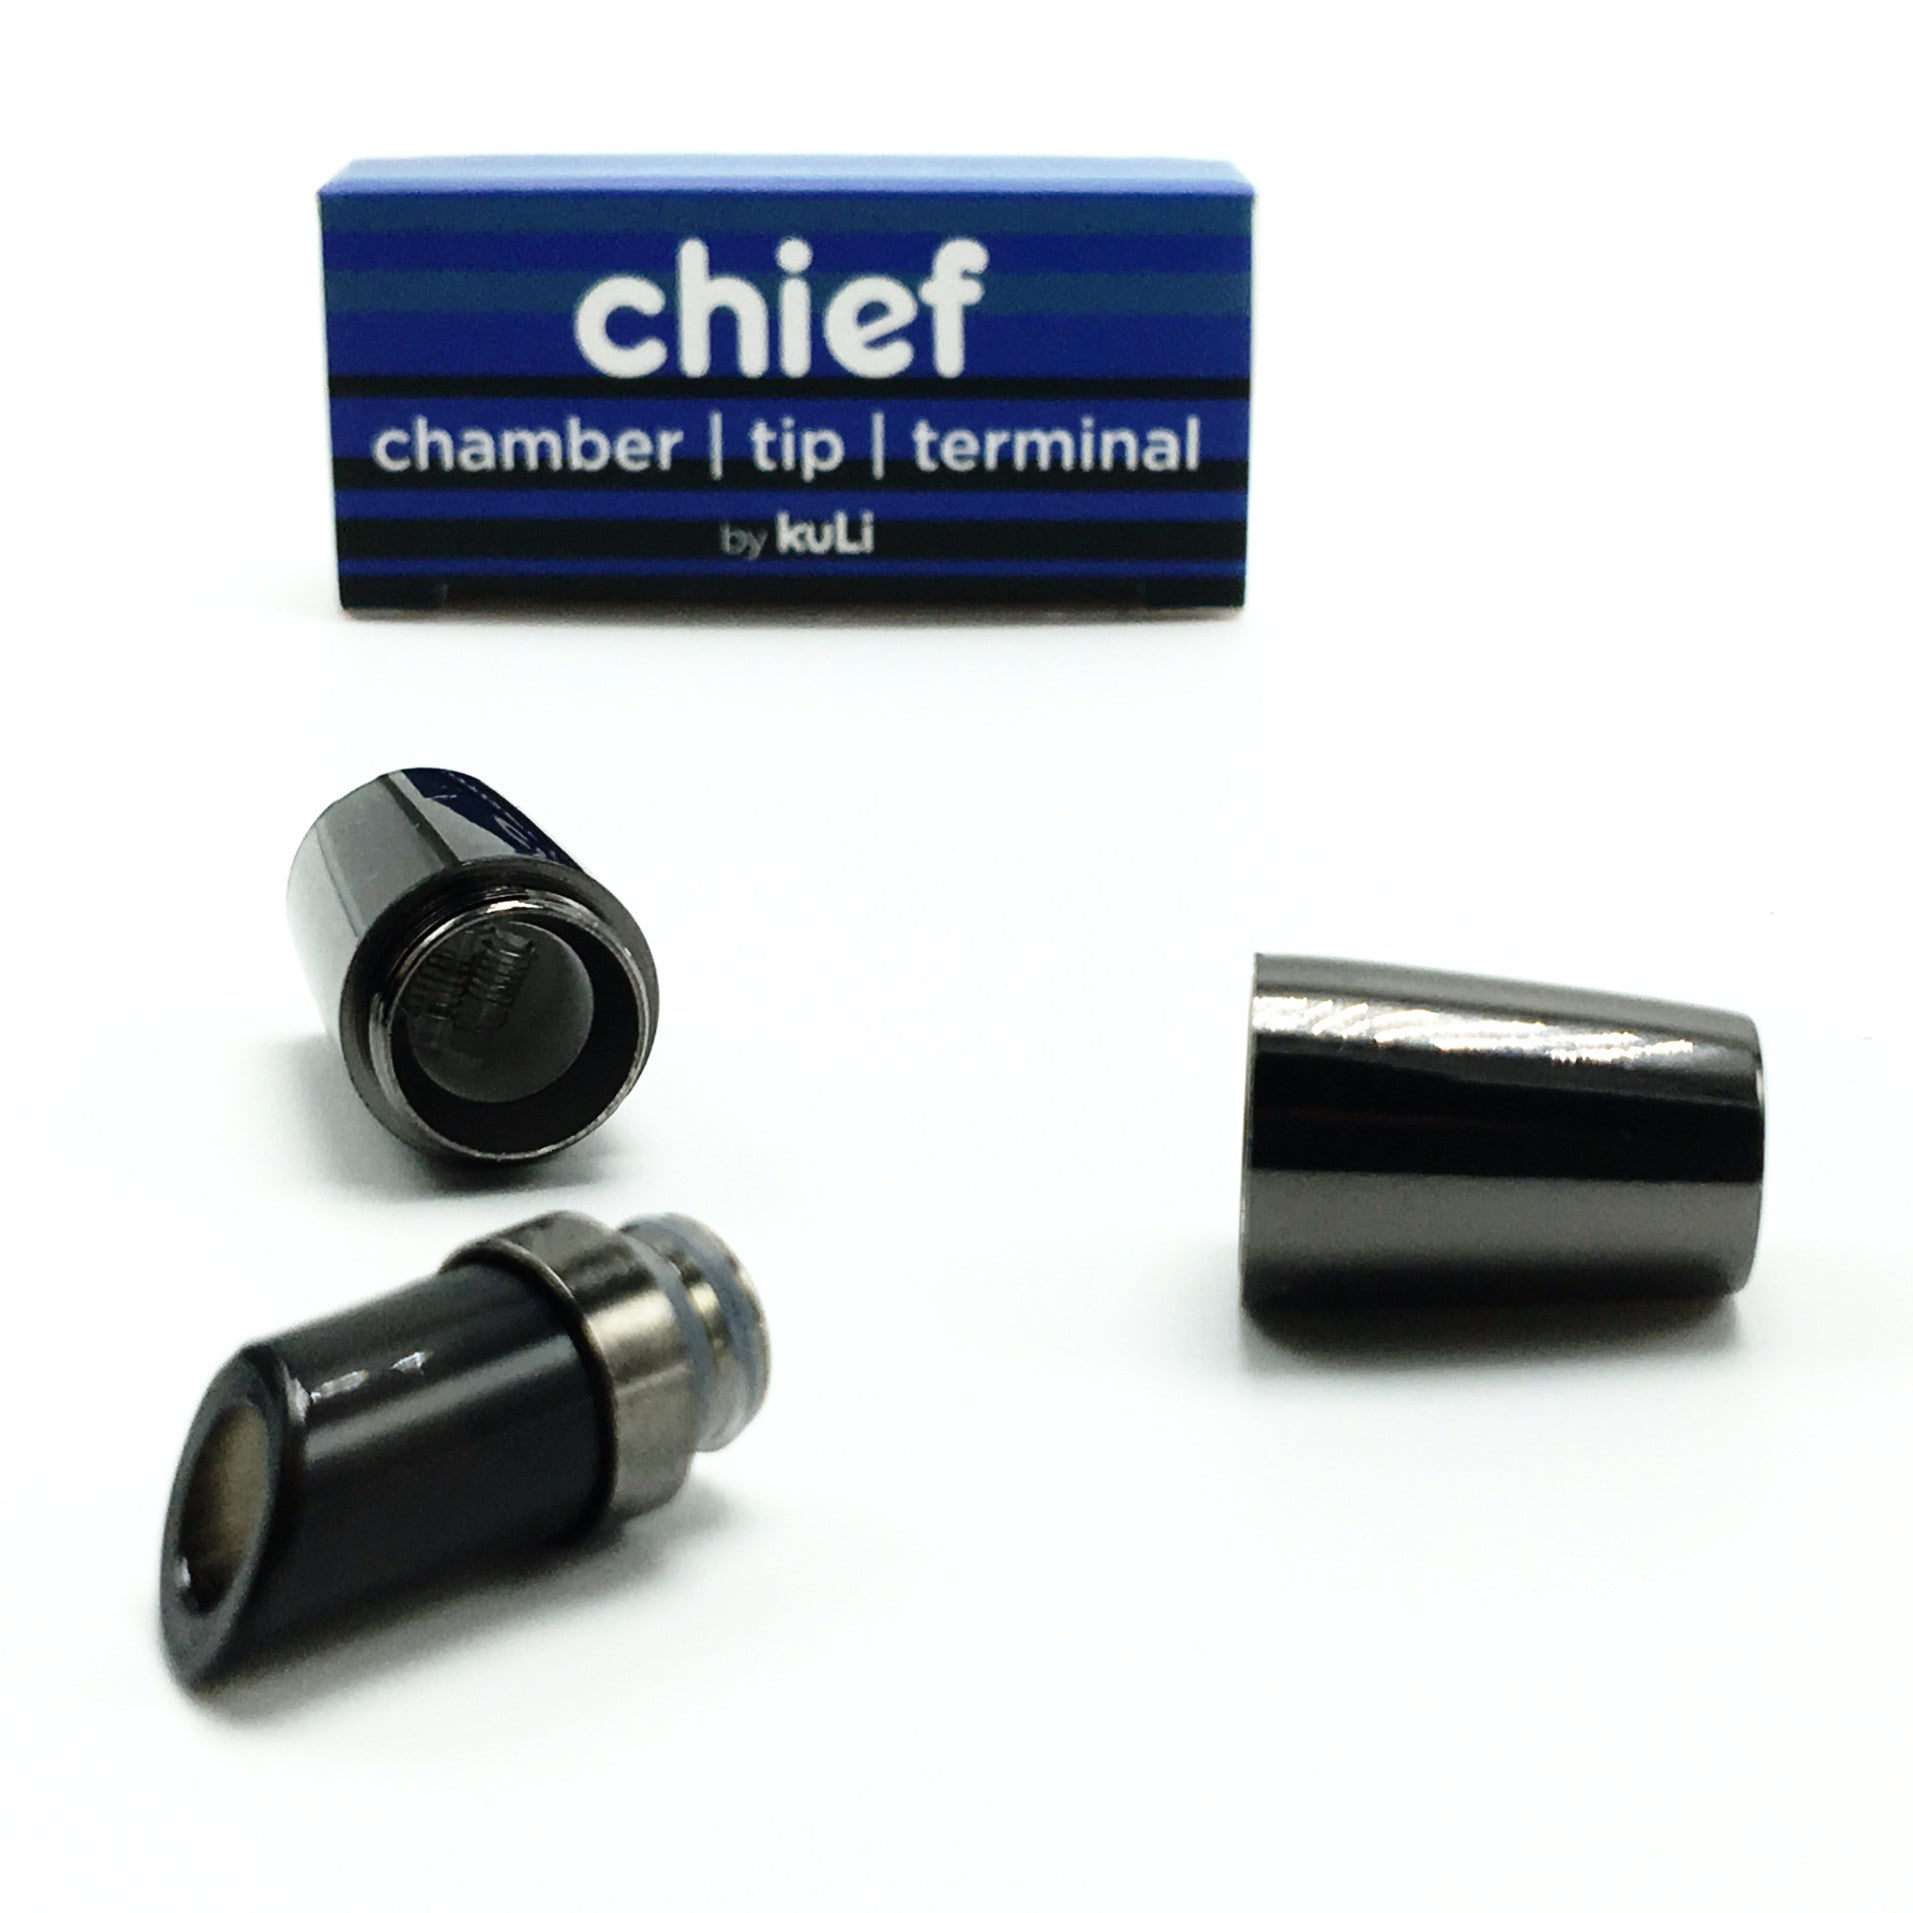 replacement chief chamber | tip | terminal